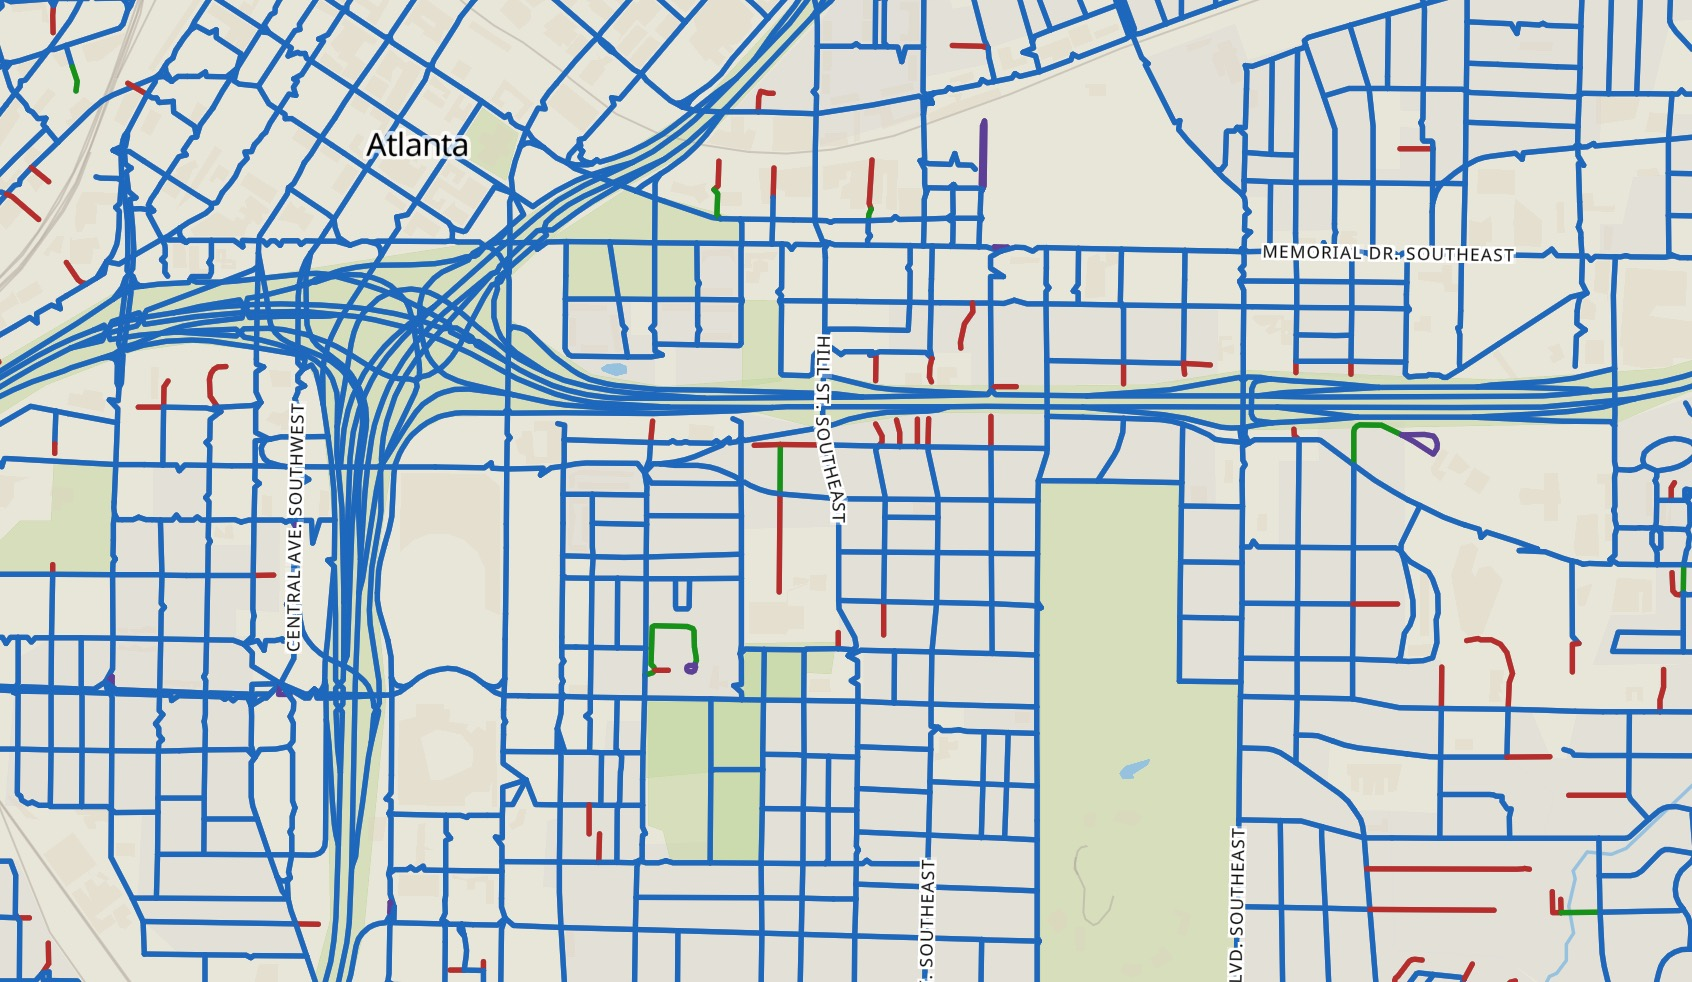 The Street-Network Sprawl Map